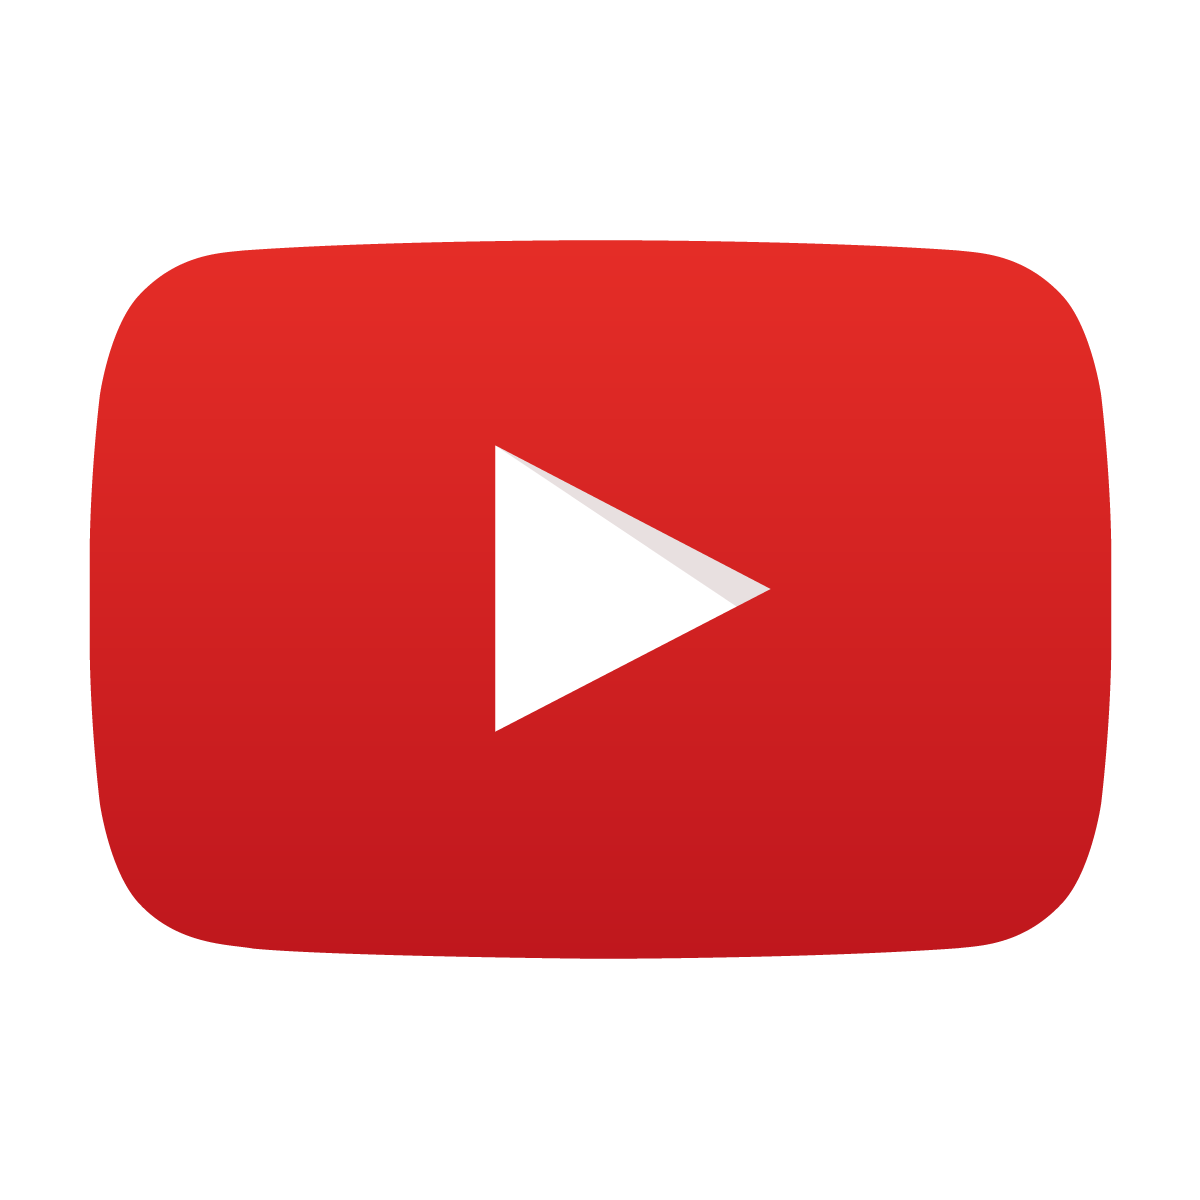 youtube-logo-png-46031